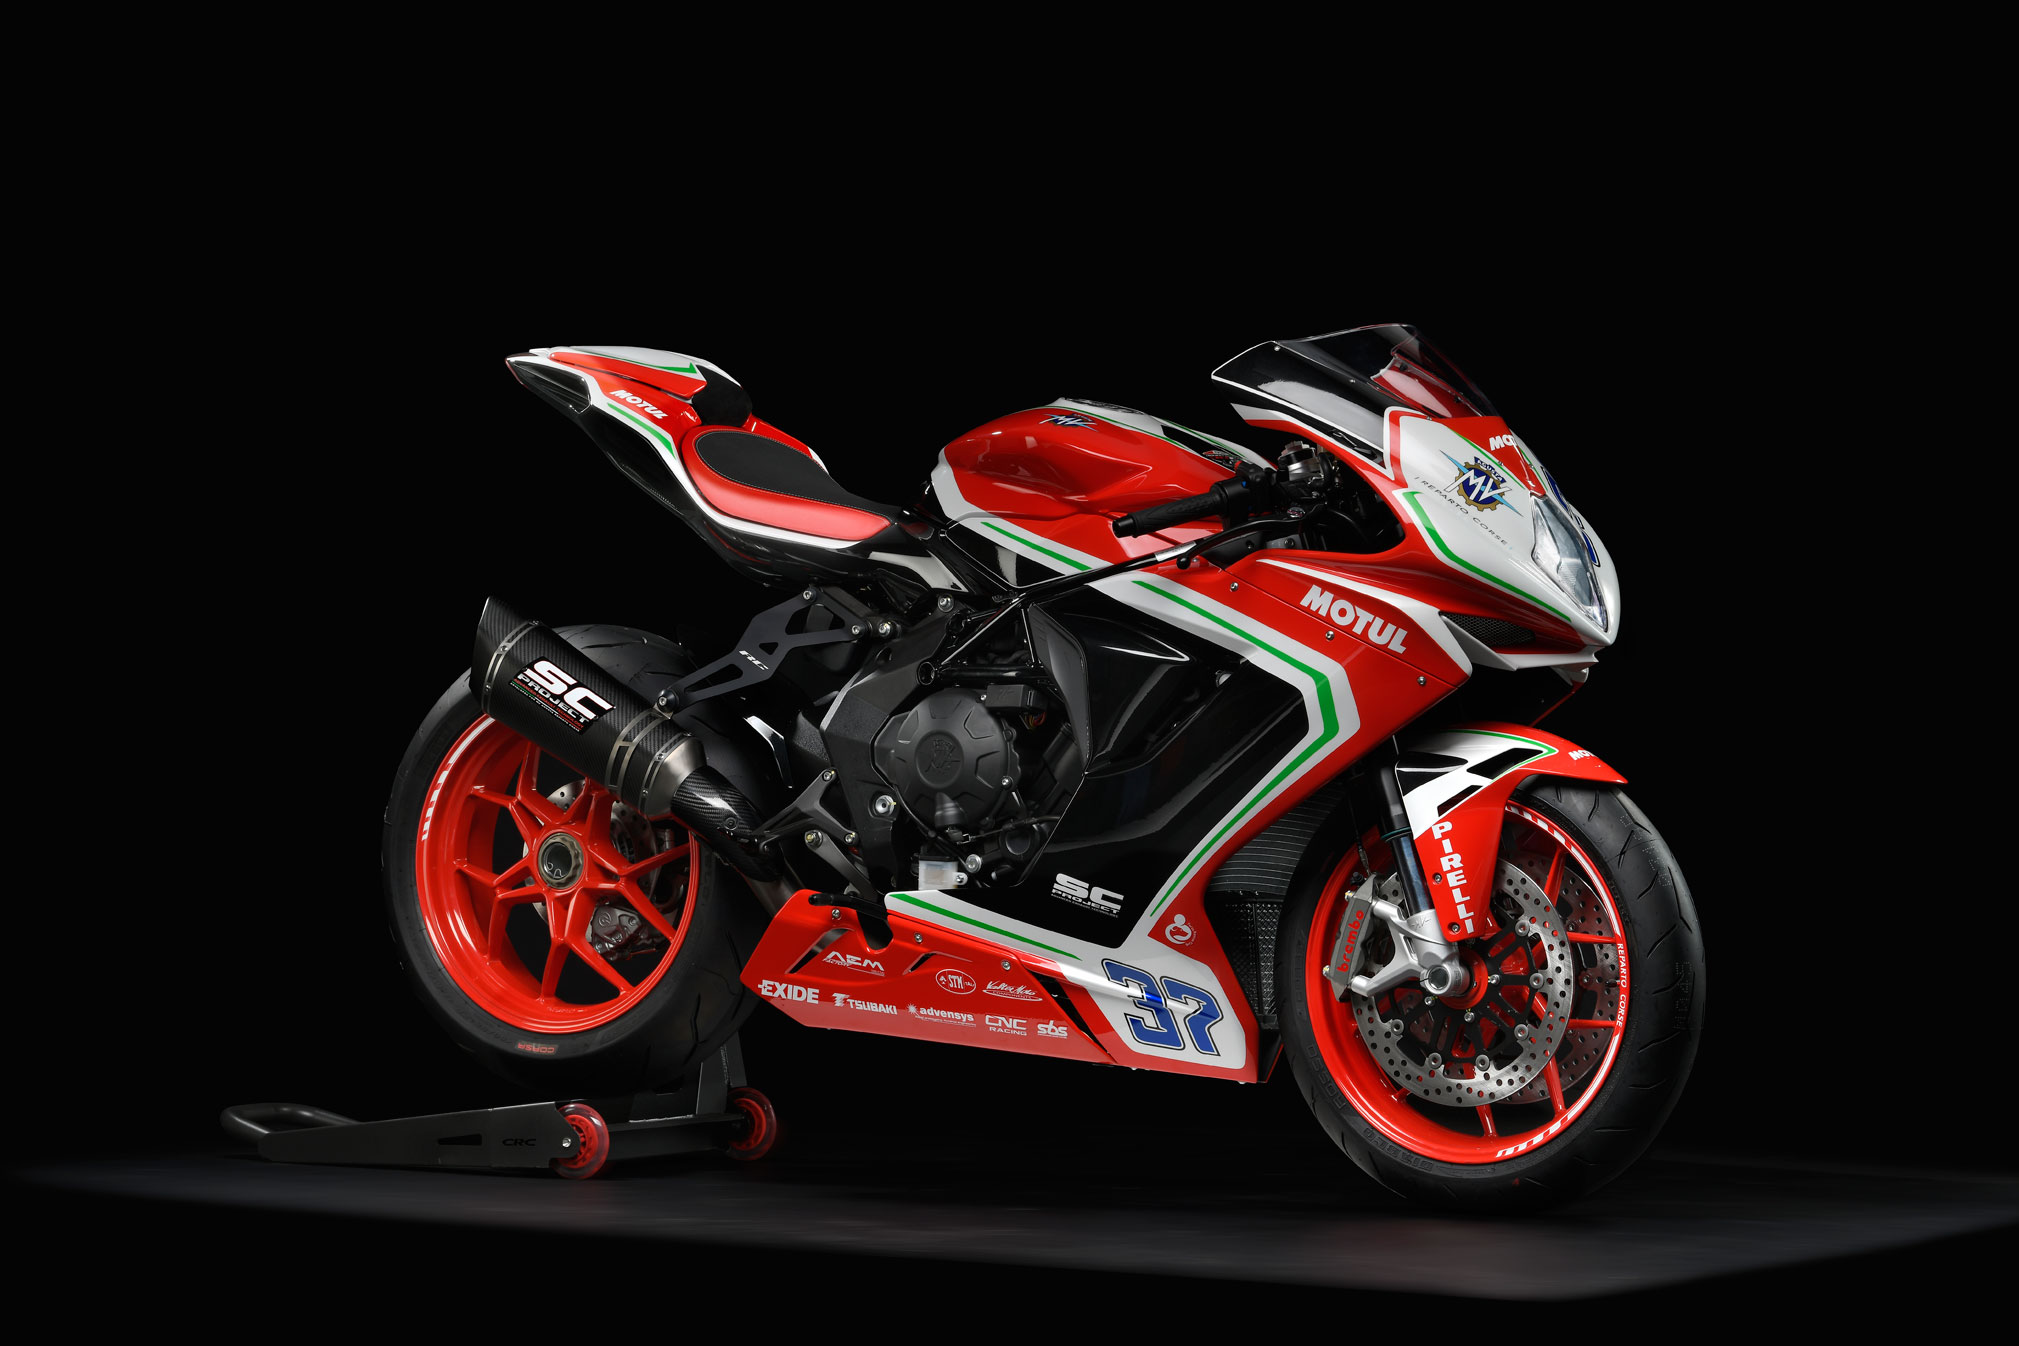 2019 mv agusta f3 800 rc guide total motorcycle. Black Bedroom Furniture Sets. Home Design Ideas